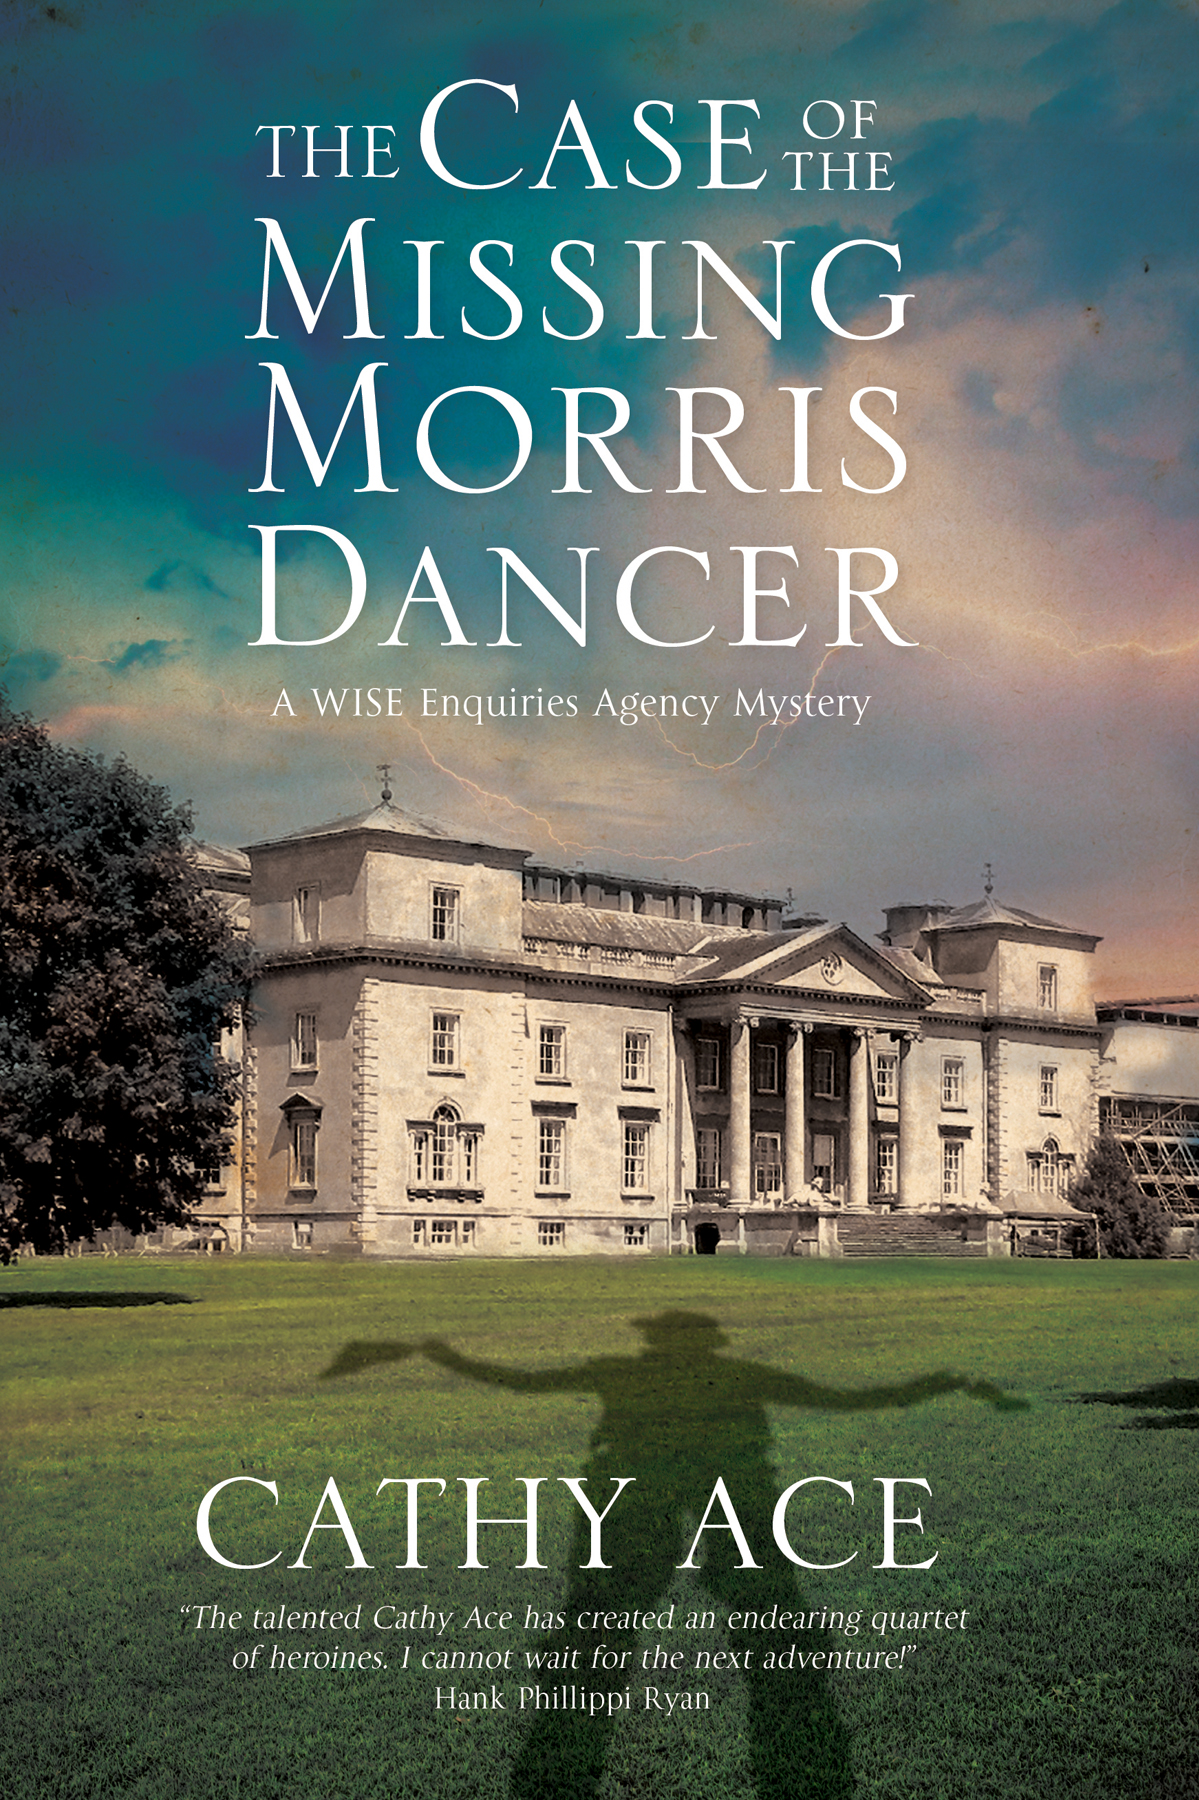 The Case of the Missing Morris Dancer A cozy mystery set in Wales